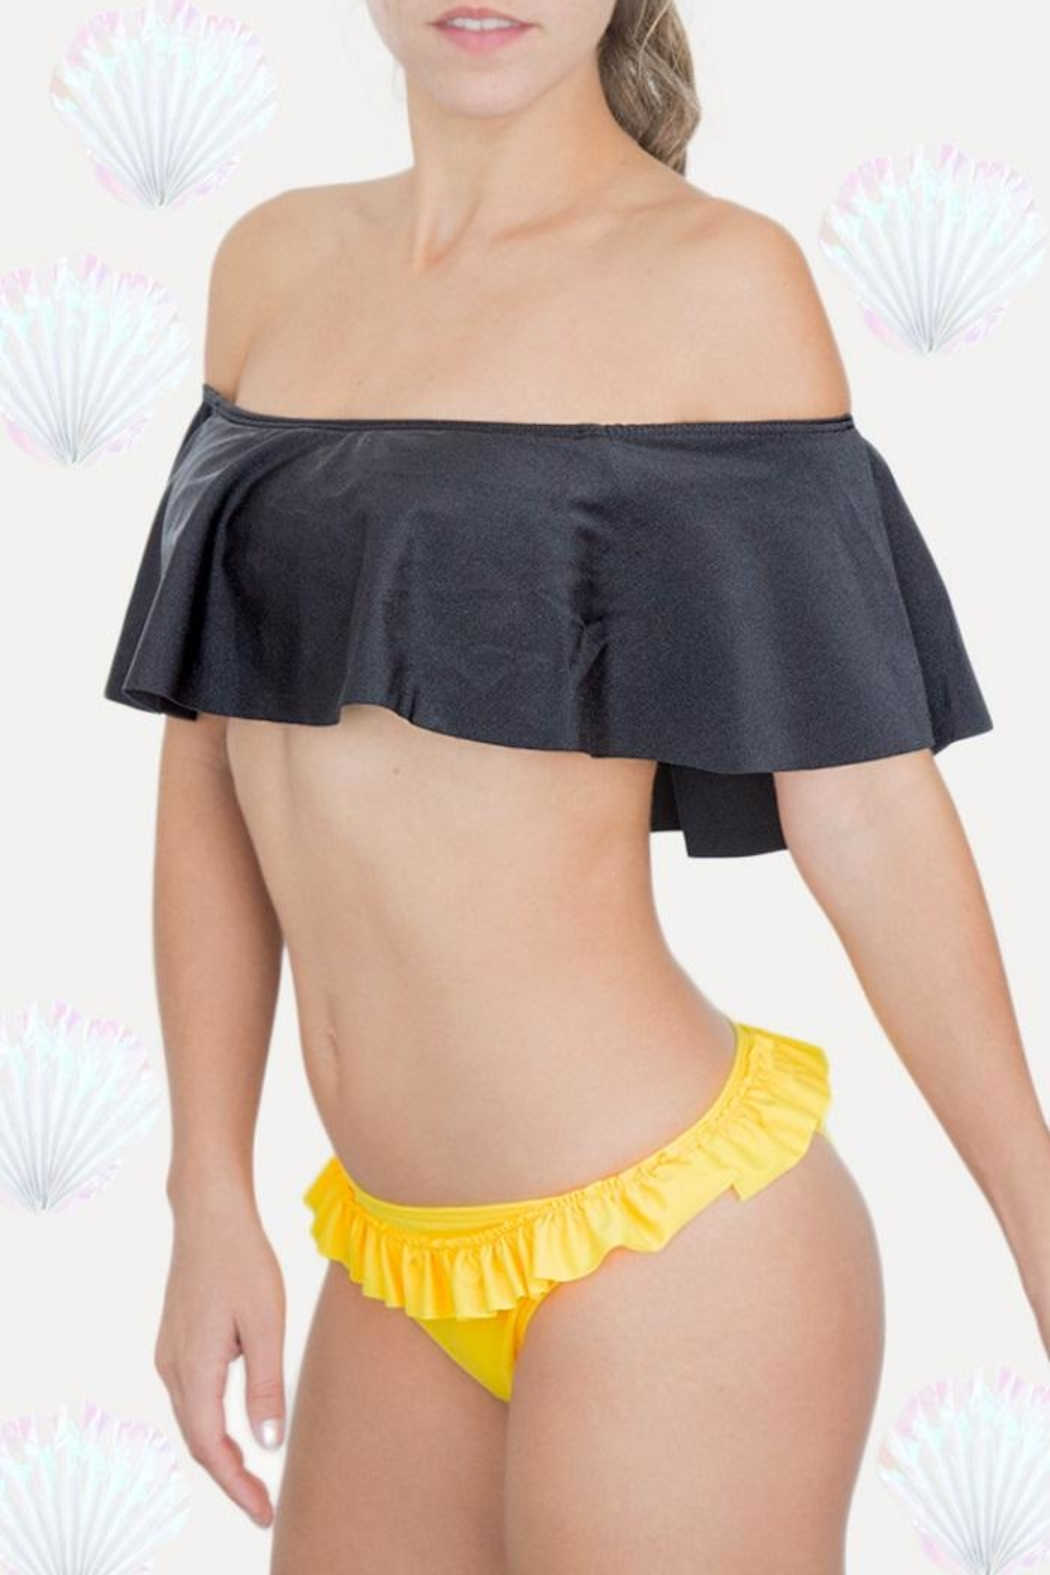 Fridasch swimwear Black-And-Yellow Set - Main Image